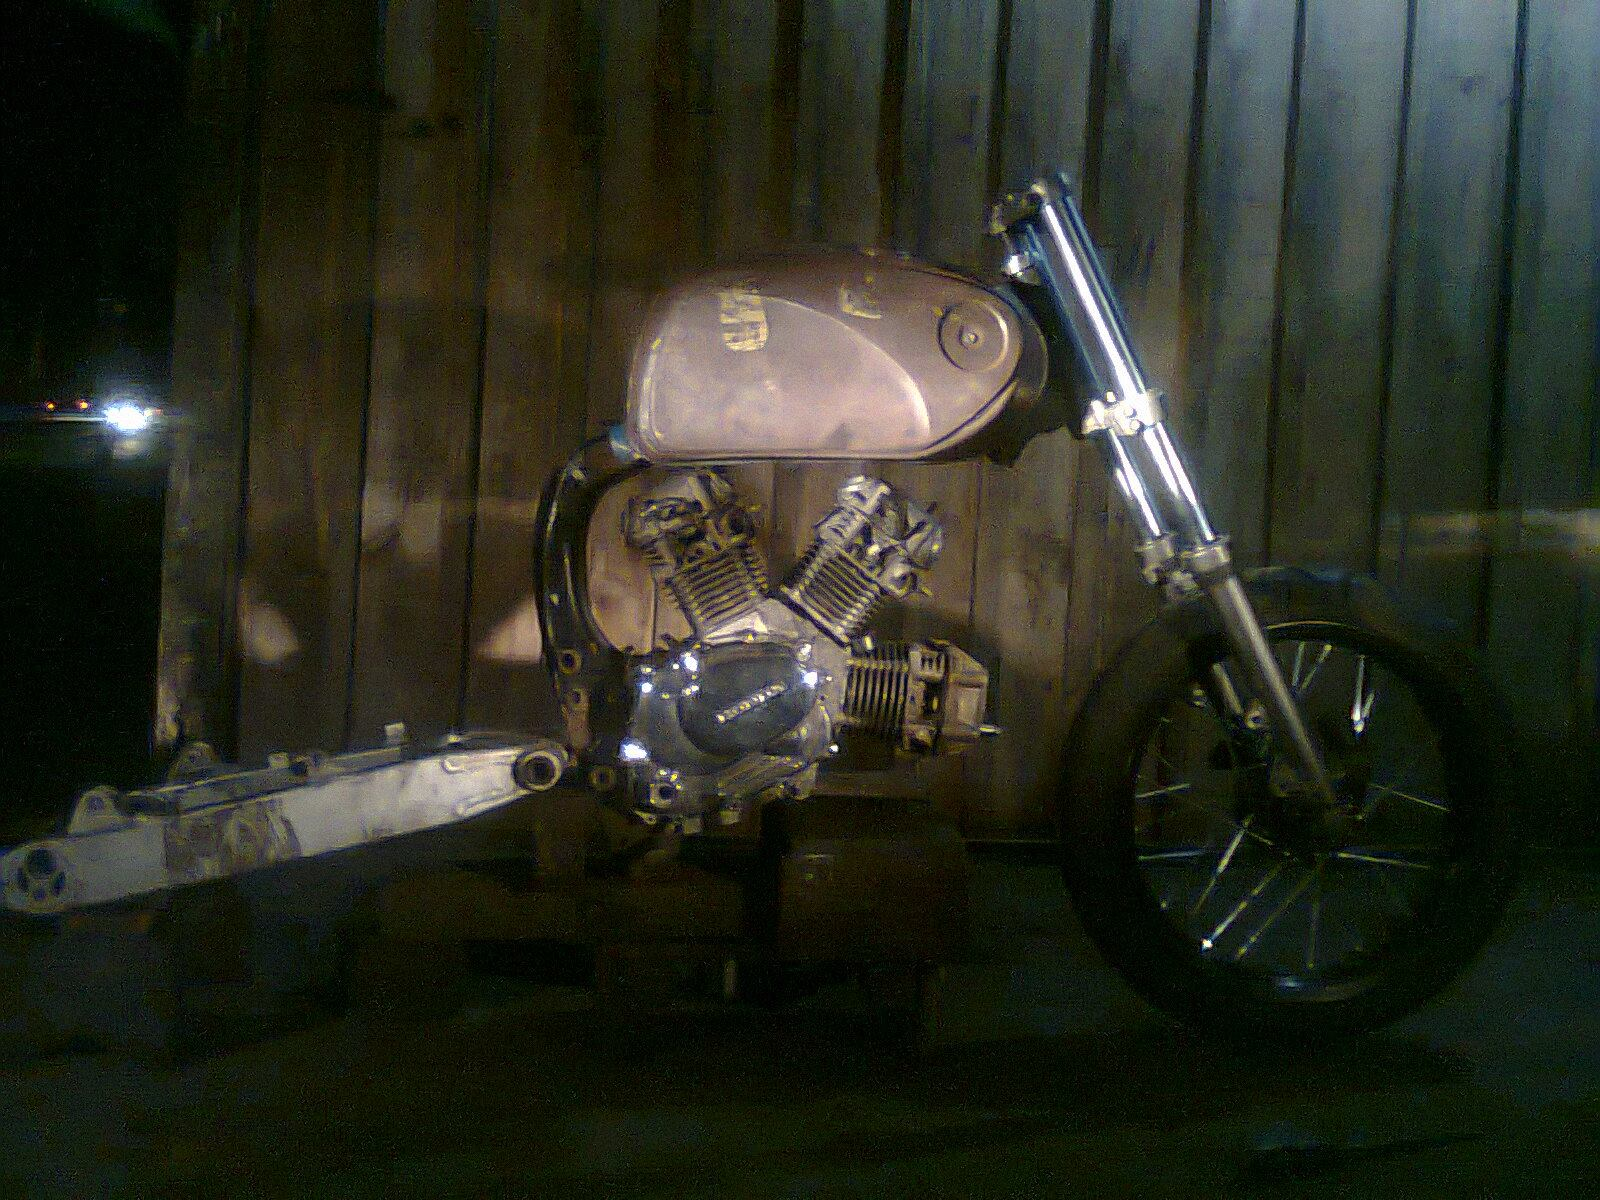 3 Cylinder W Engine From The Crazy Builder Modif Edan Ndonesia